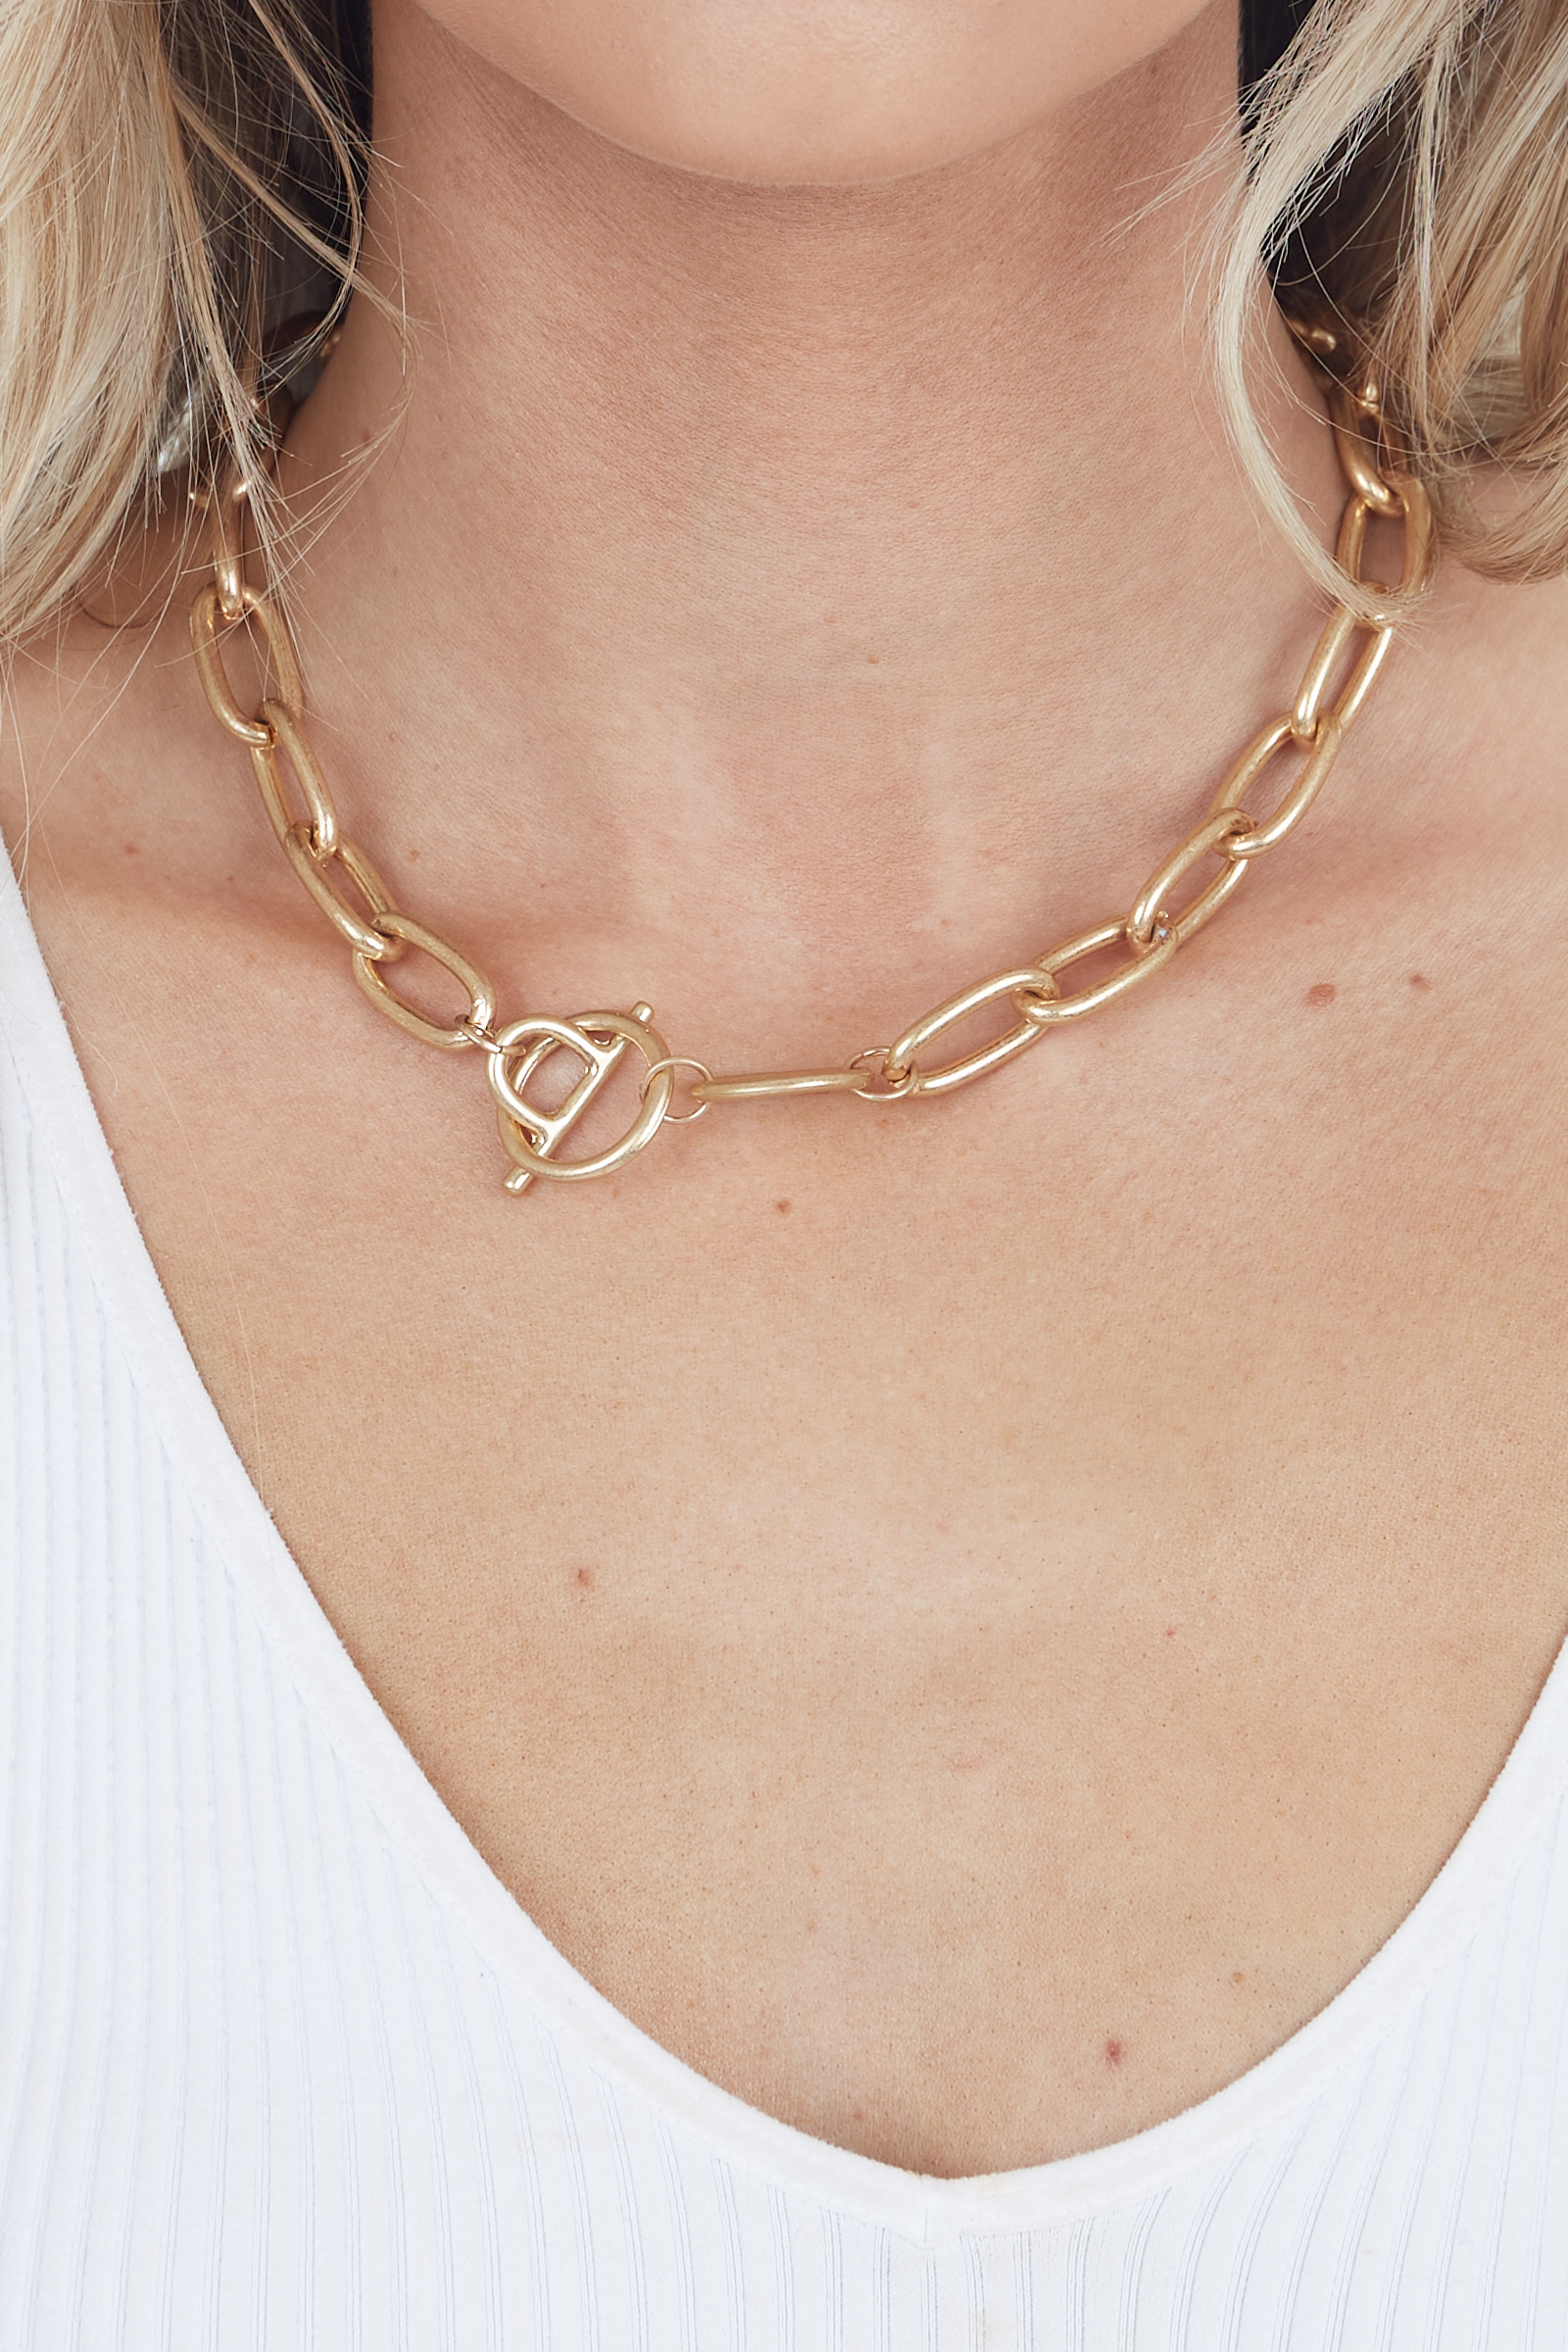 Gold Large Chain Choker Necklace with Toggle Closure